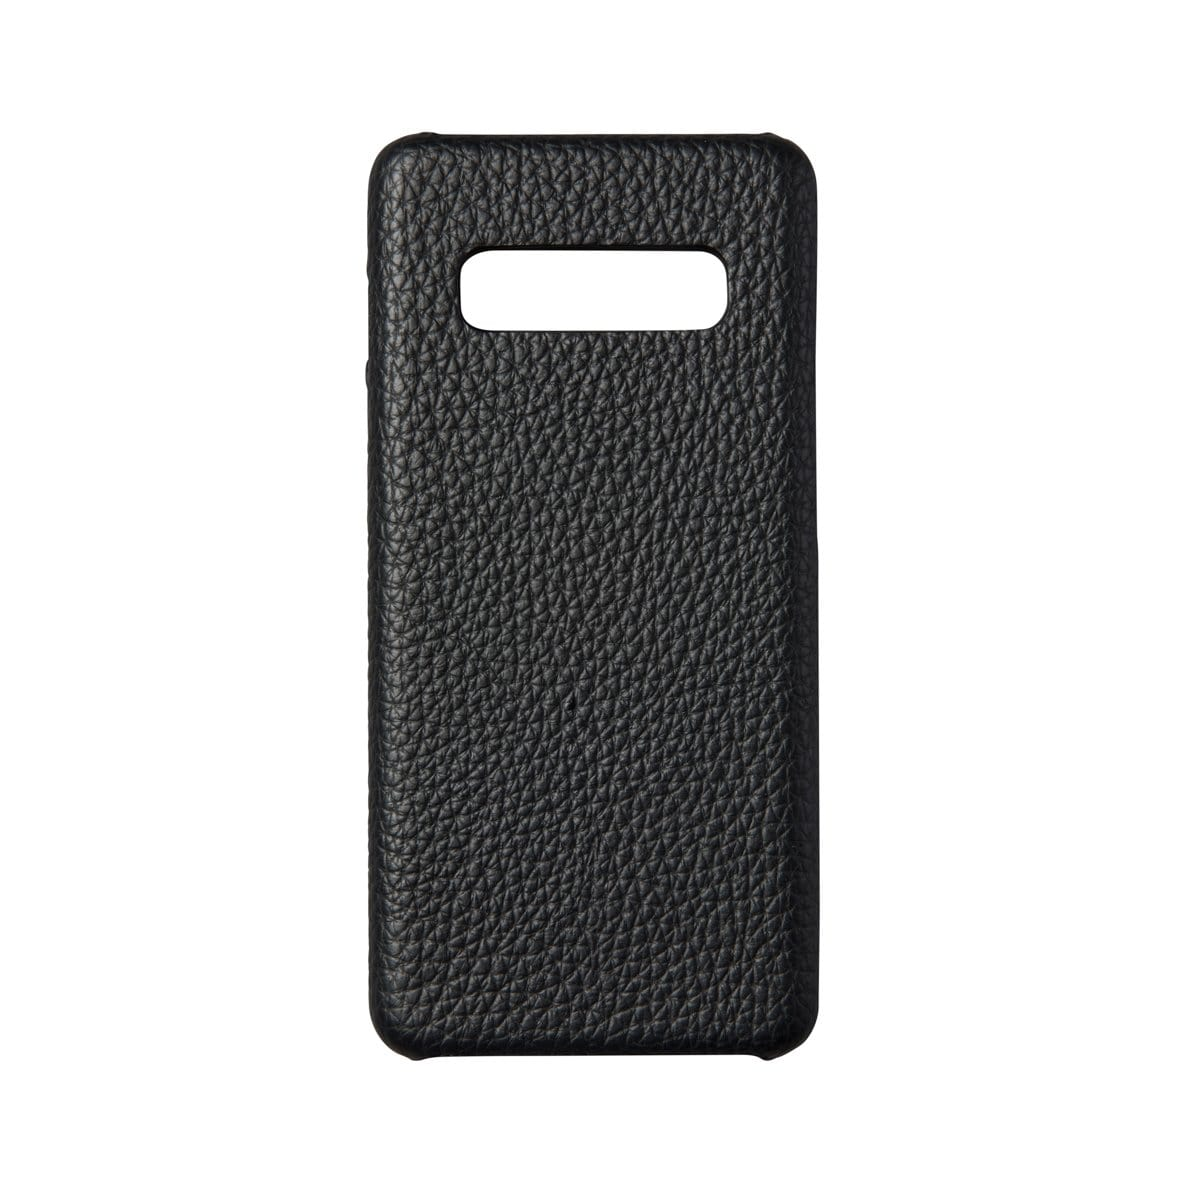 Jet Black Phone Case (Samsung 10+)